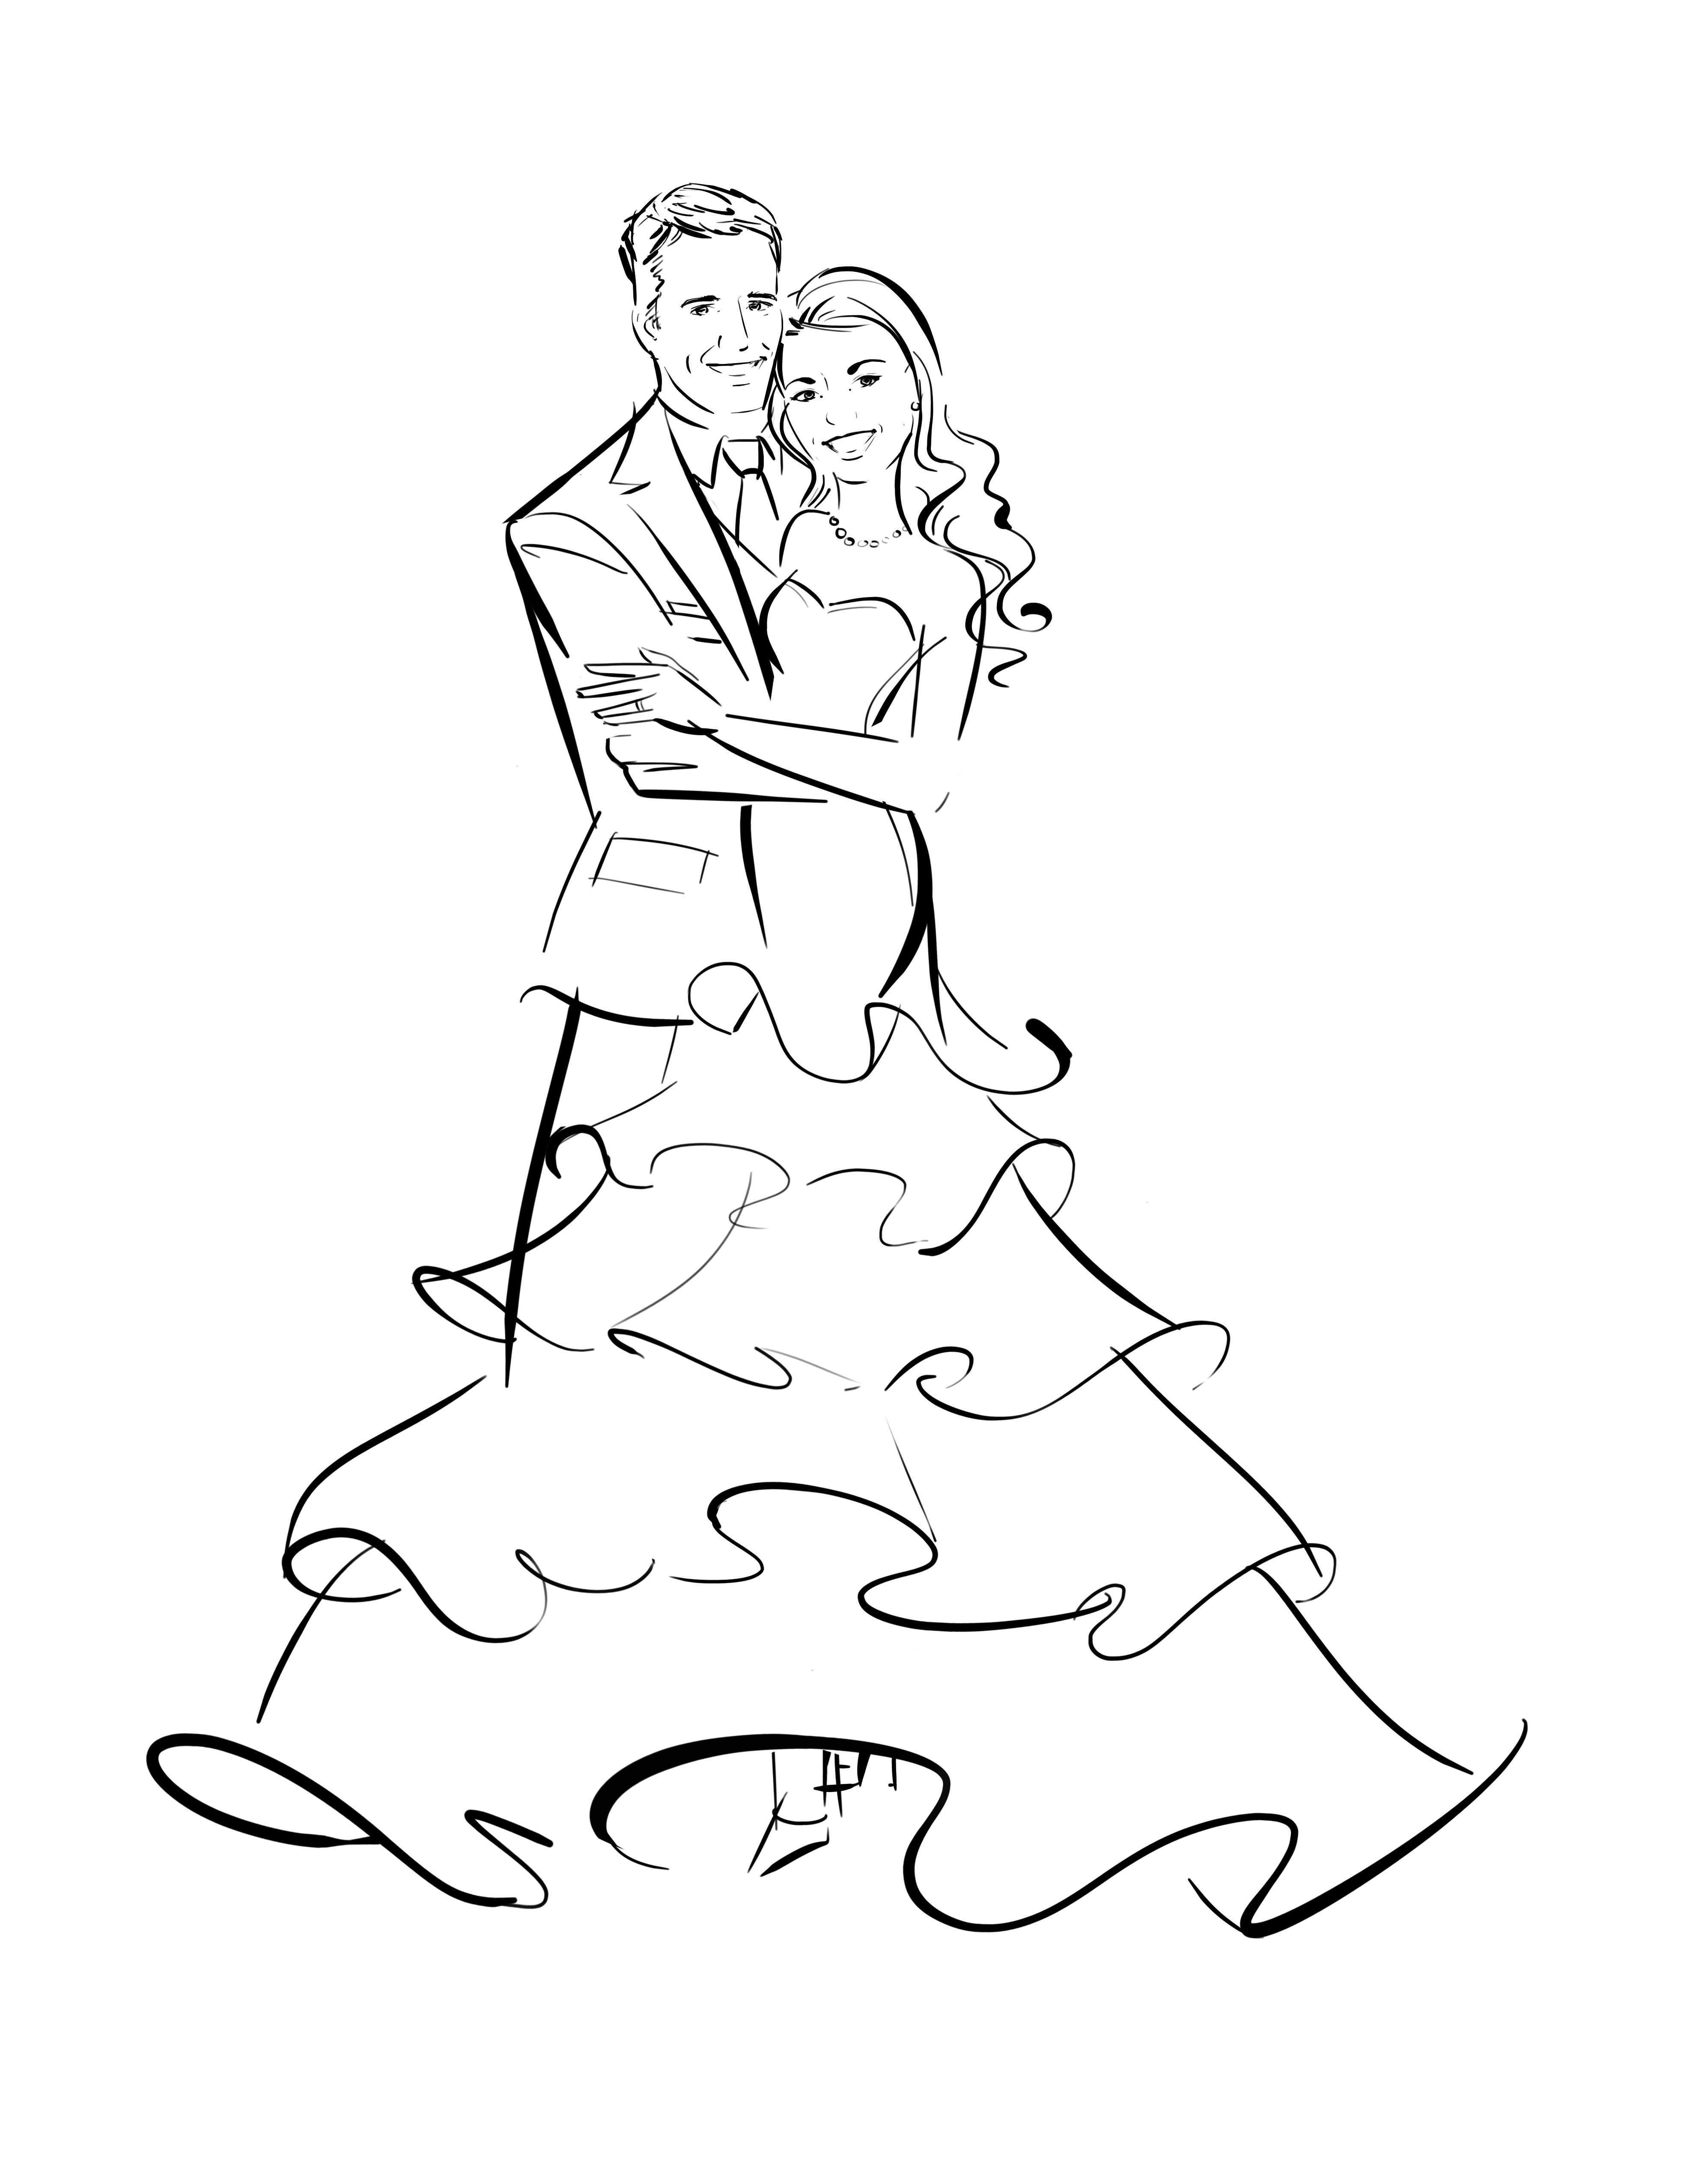 Such A Great Idea An Illustration Of You And Your Sweetie Thanks You Notes Ilustracoes Panda Desenho Casamento